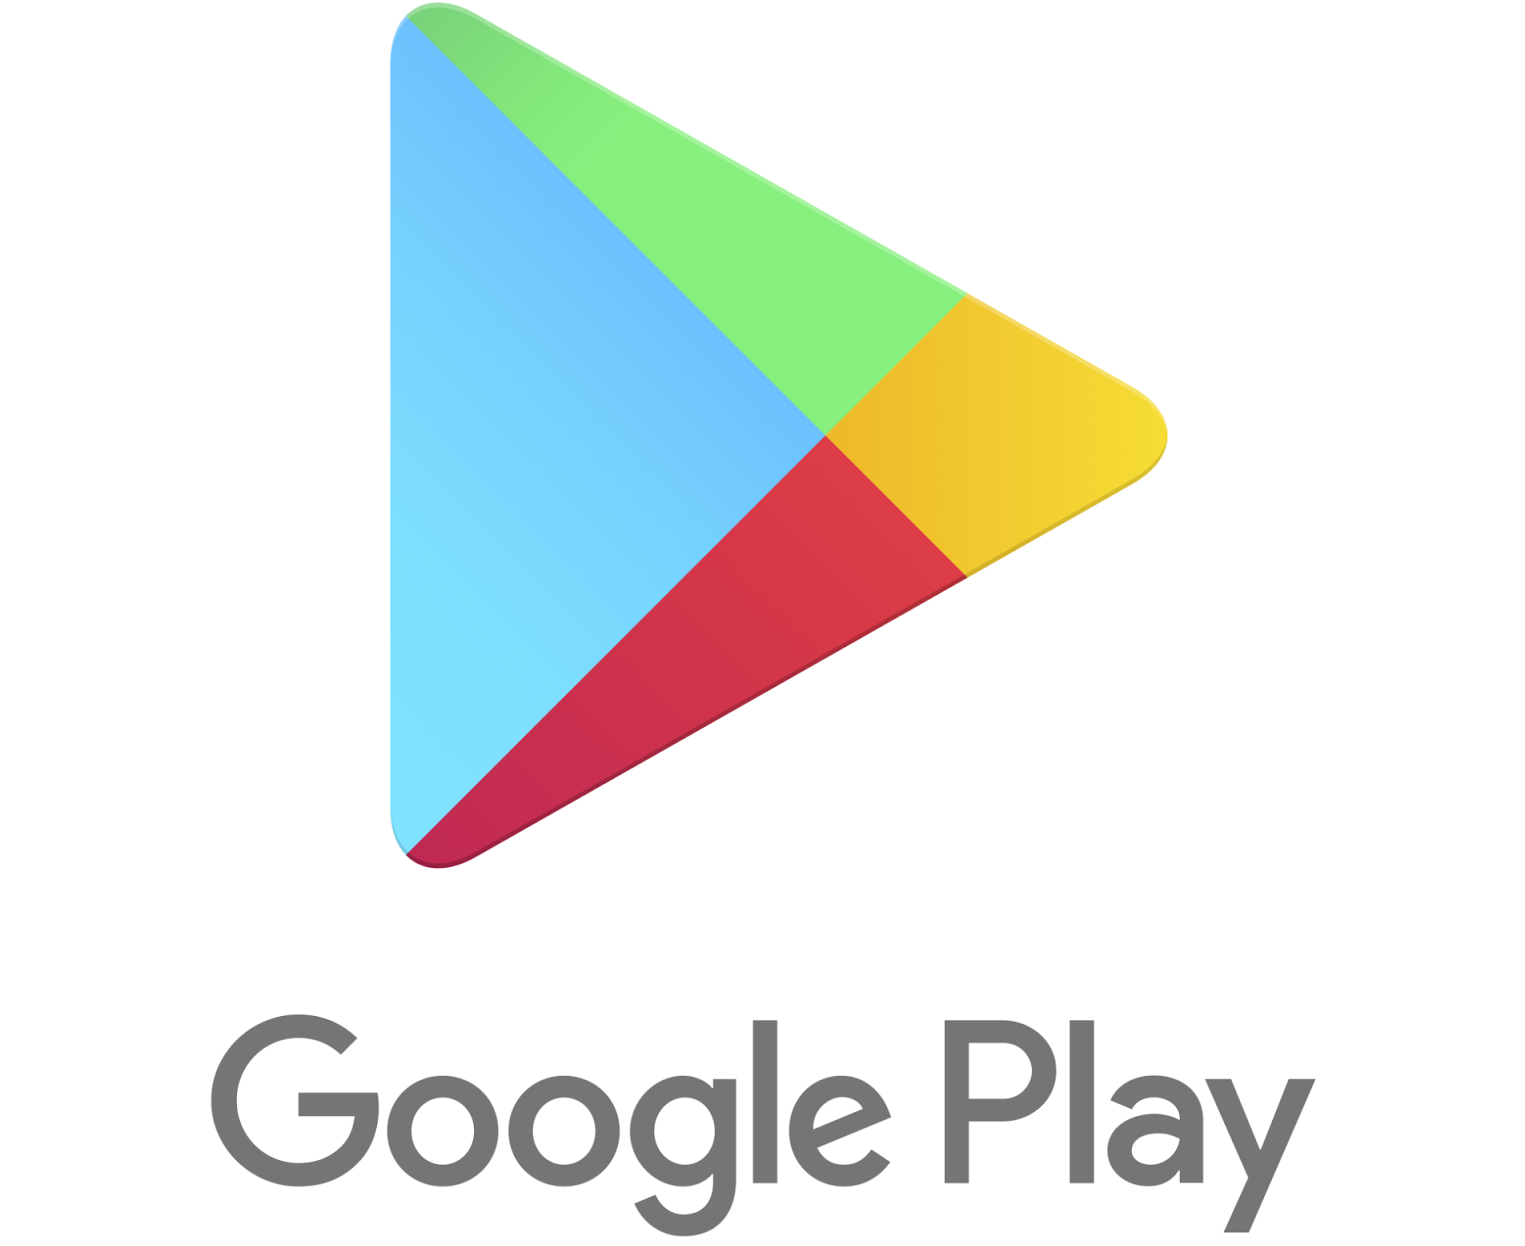 Google Play Store picks up a new icon and notifications.